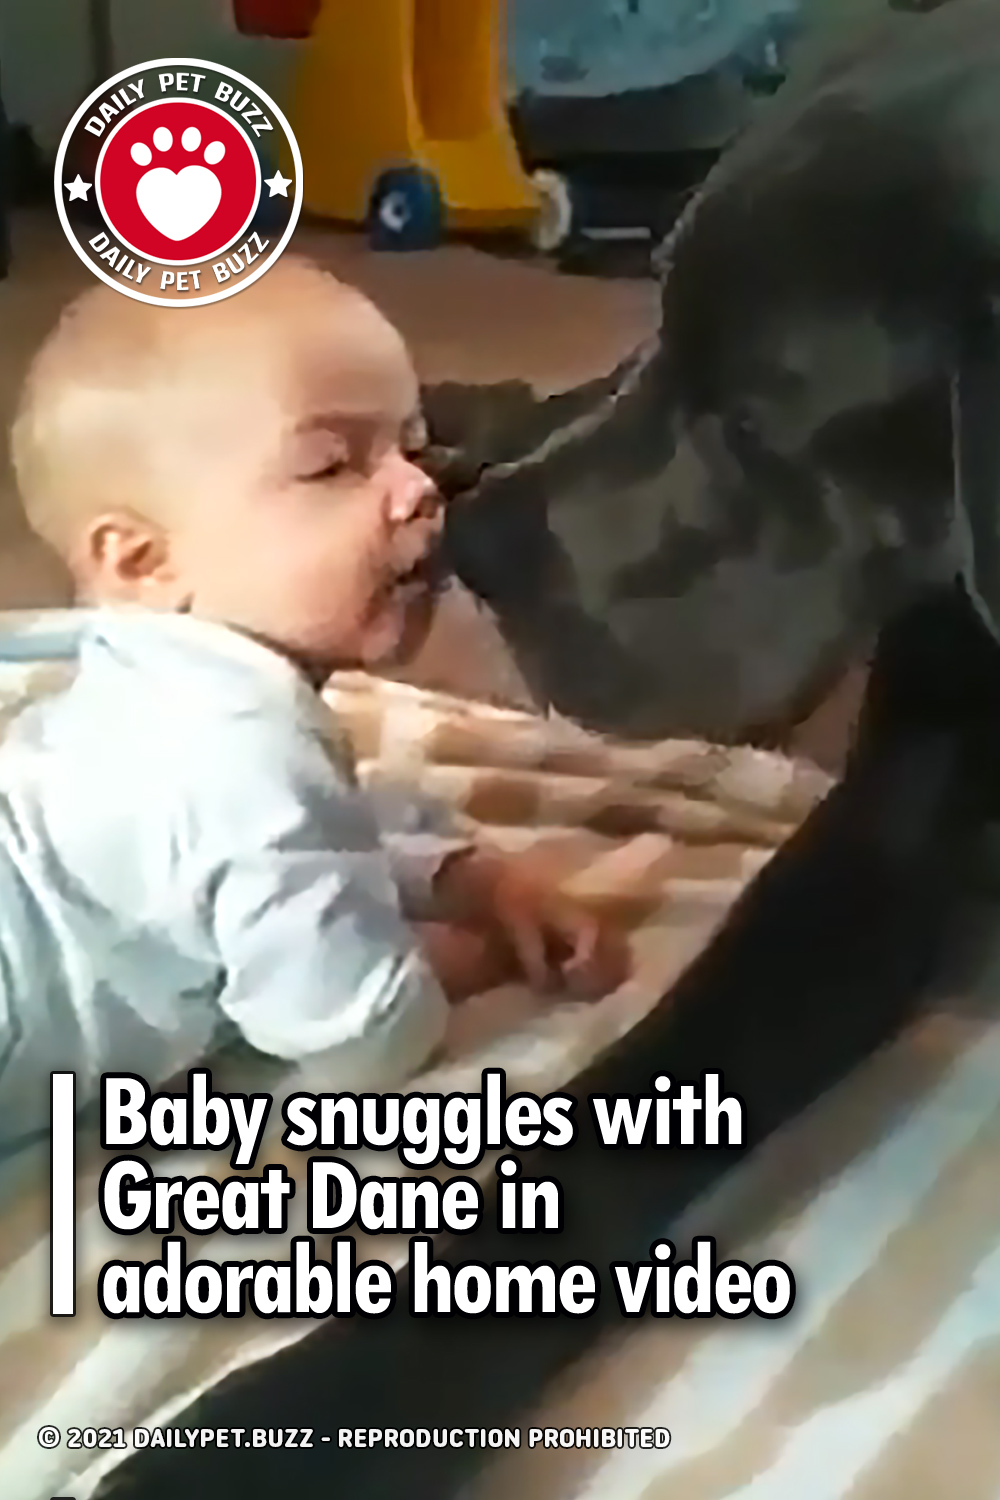 Baby snuggles with Great Dane in adorable home video